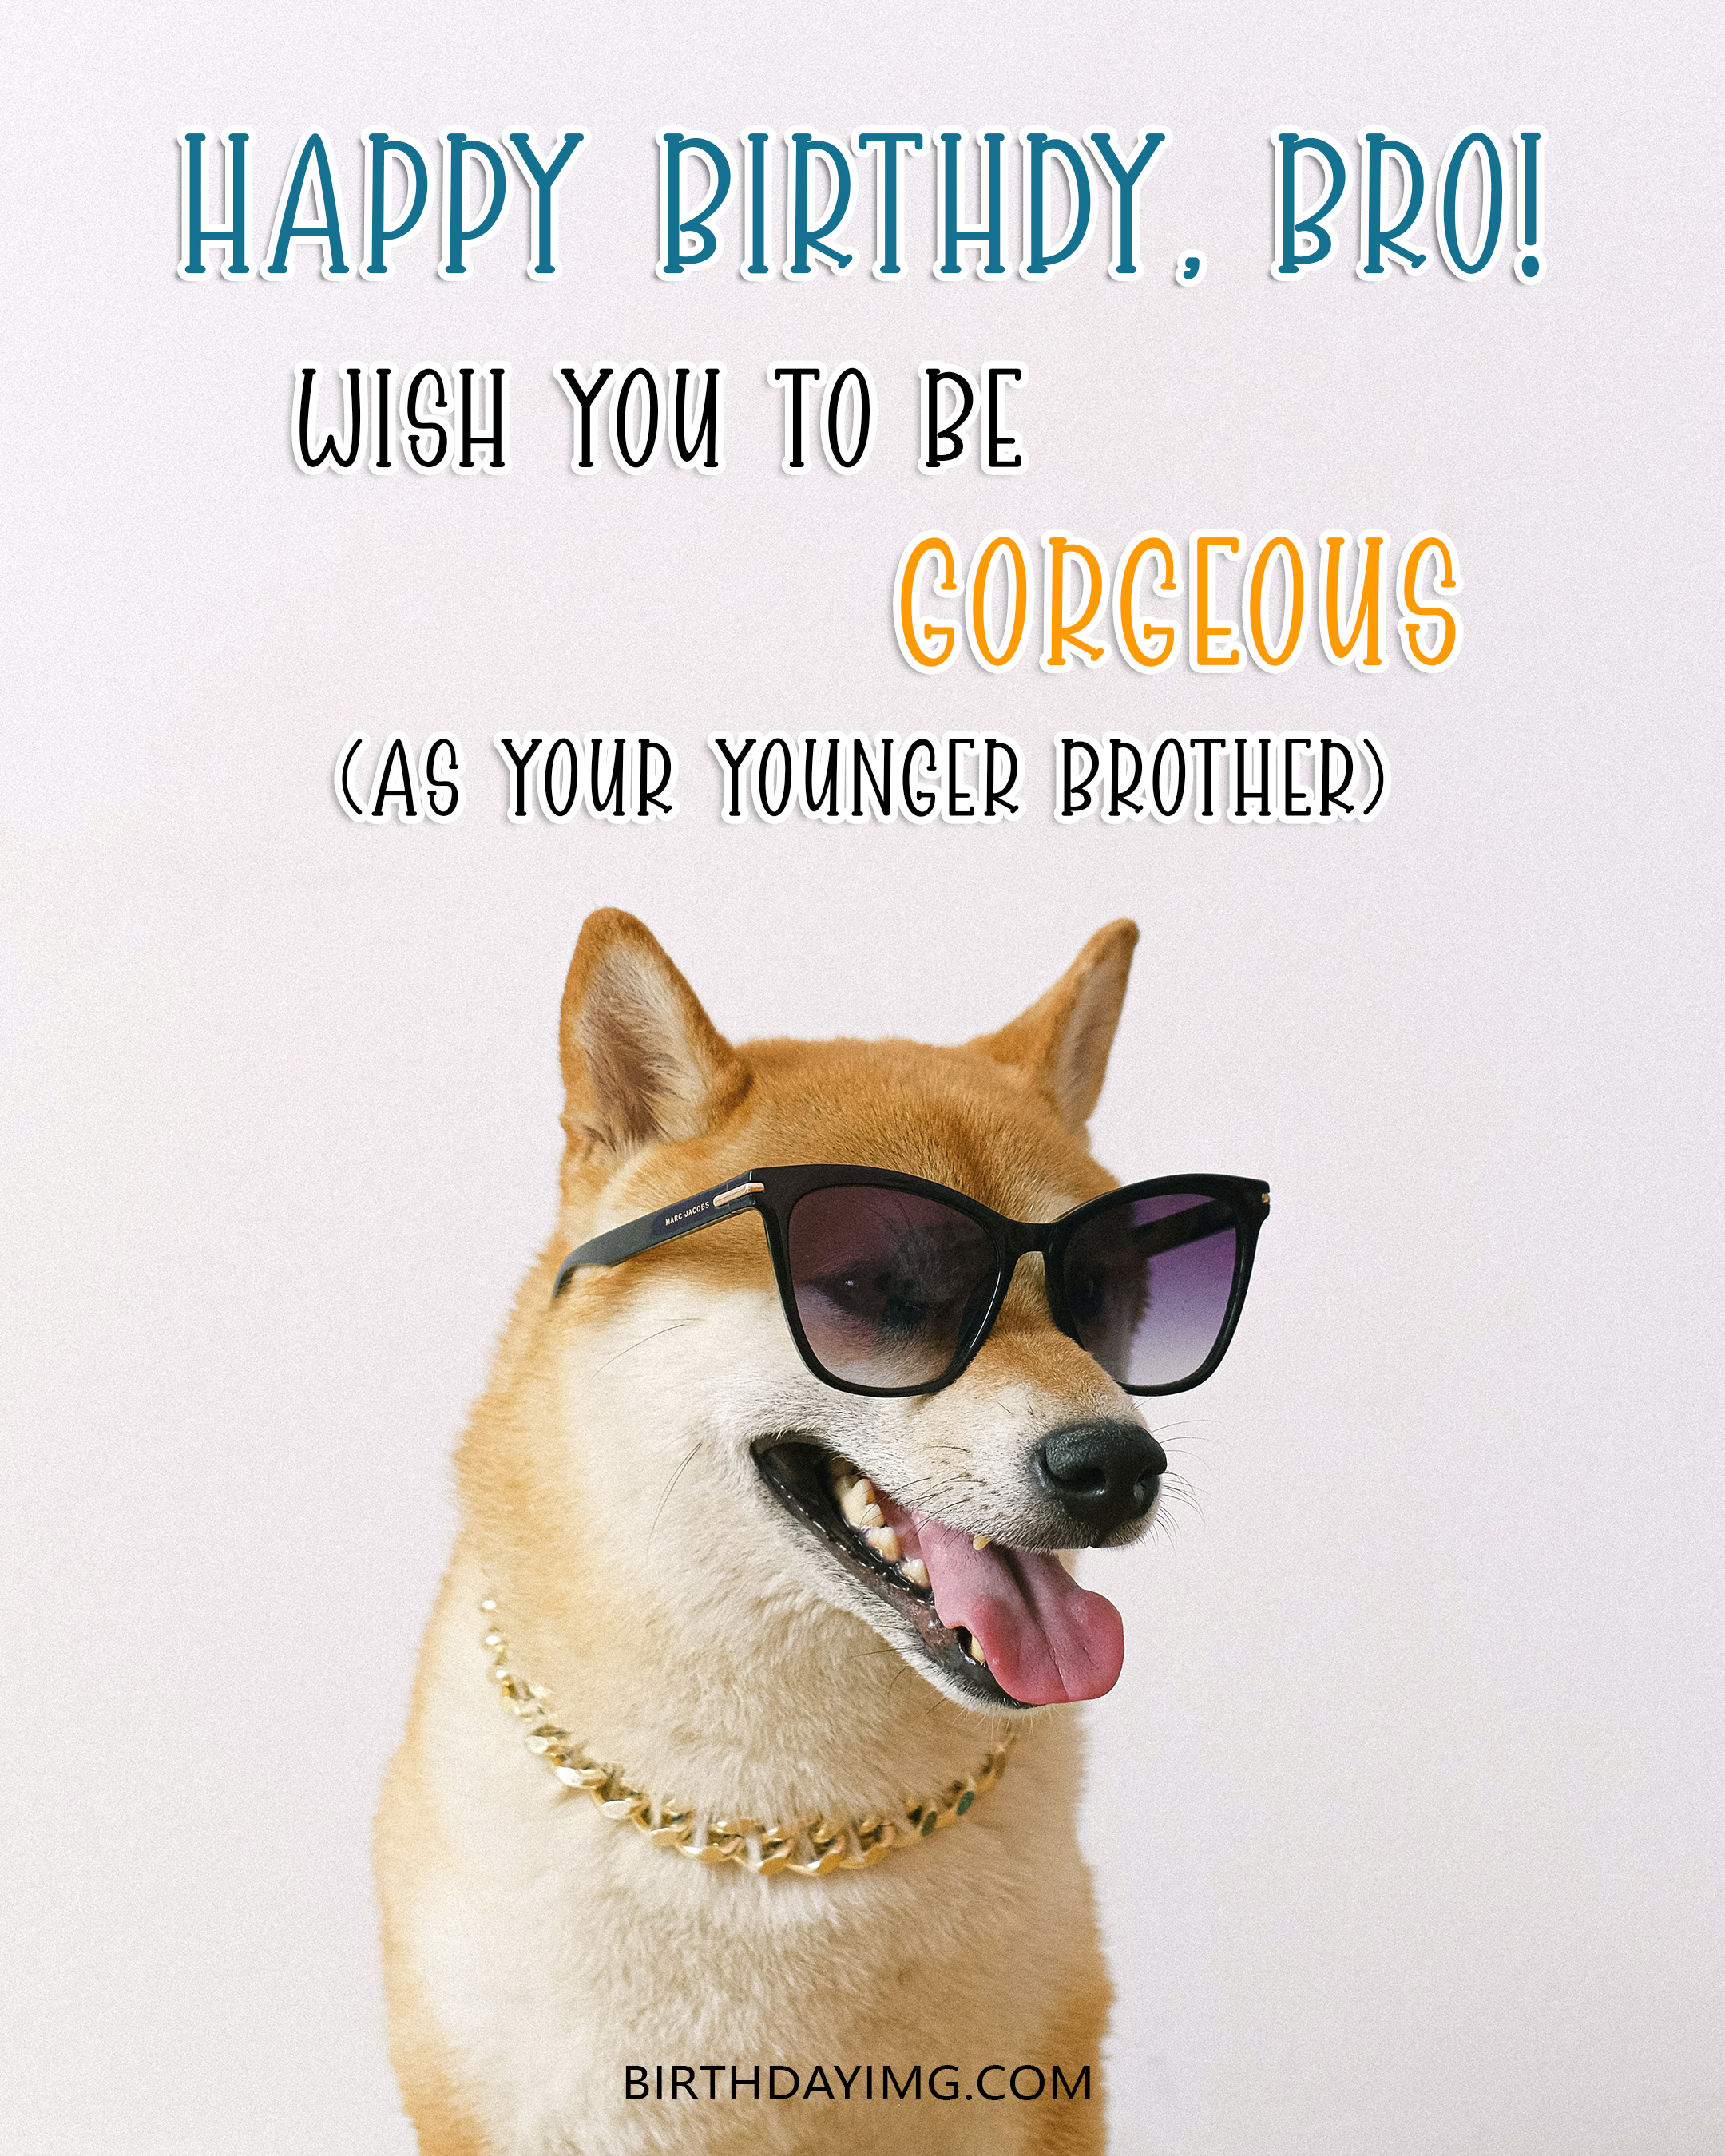 Free Funny Happy Birthday Image For Brother With Dog - birthdayimg.com